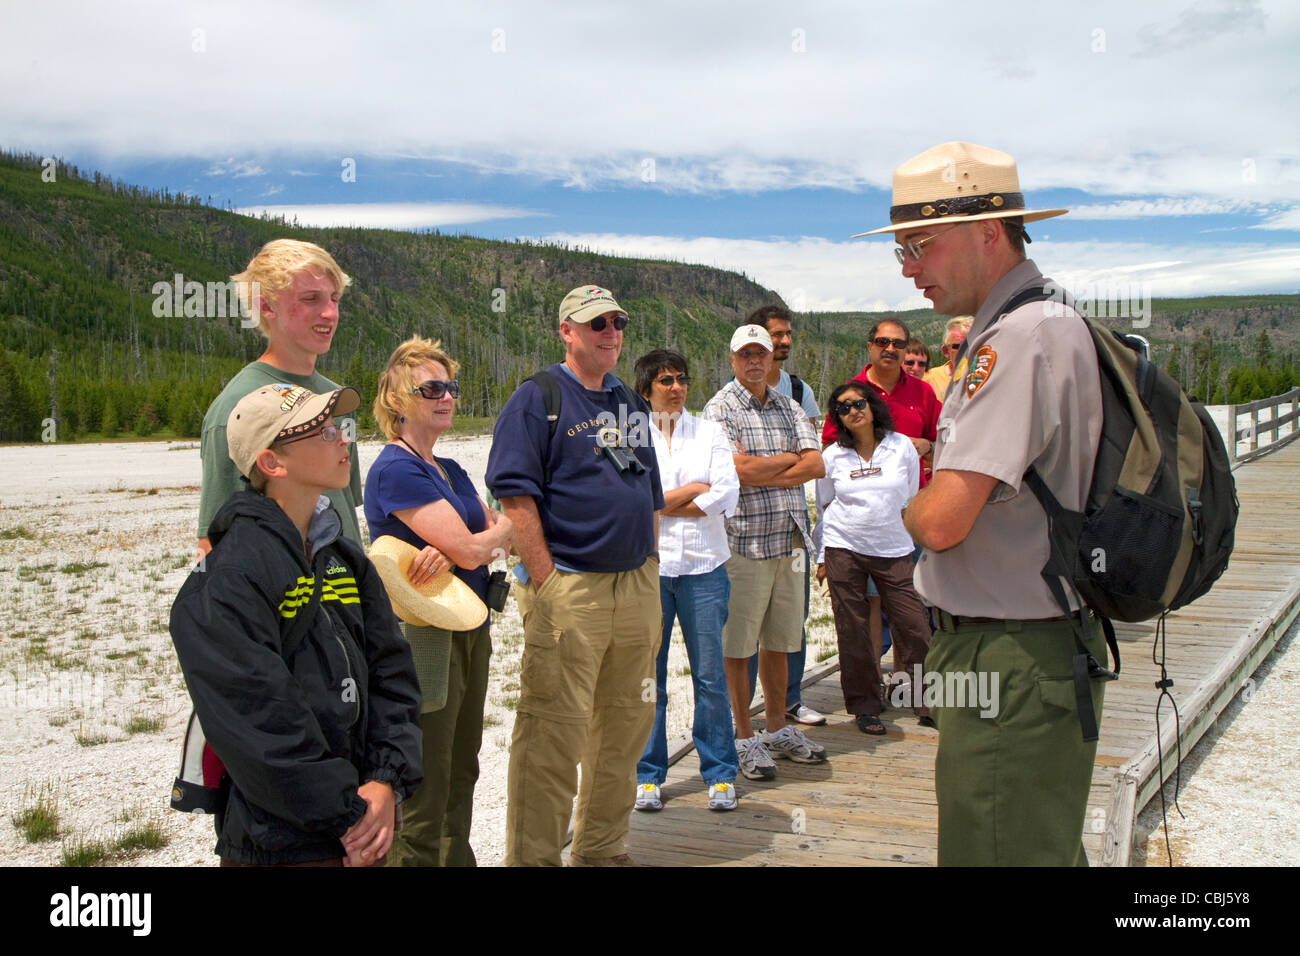 Park ranger giving a tour group information about the Upper Geyser Basin in Yellowstone National Park, Wyoming, - Stock Image